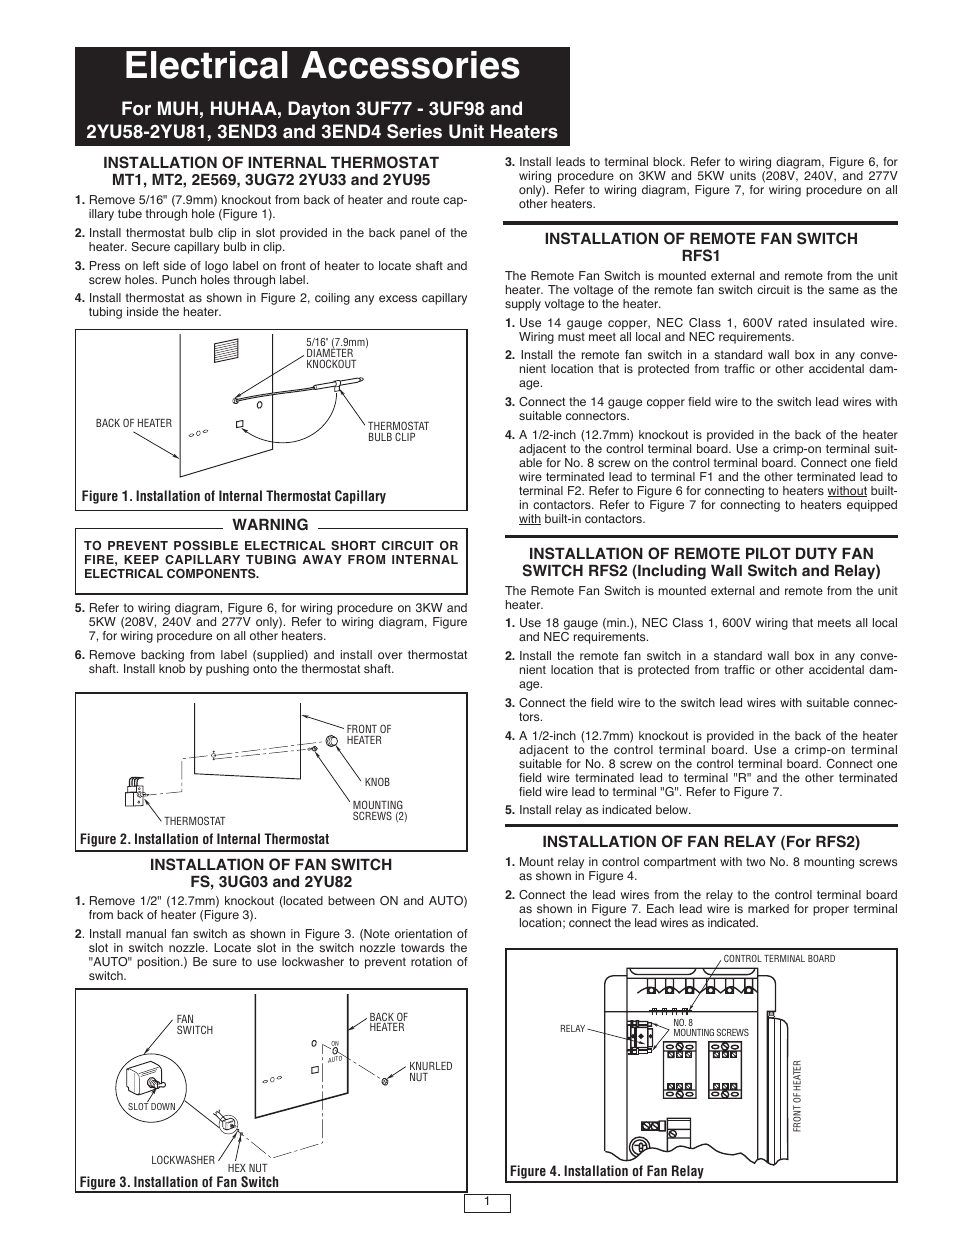 qmark muh horizontal _ downflow unit heaters page1 qmark muh horizontal downflow unit heaters user manual 2 pages unit heater wiring diagram at creativeand.co